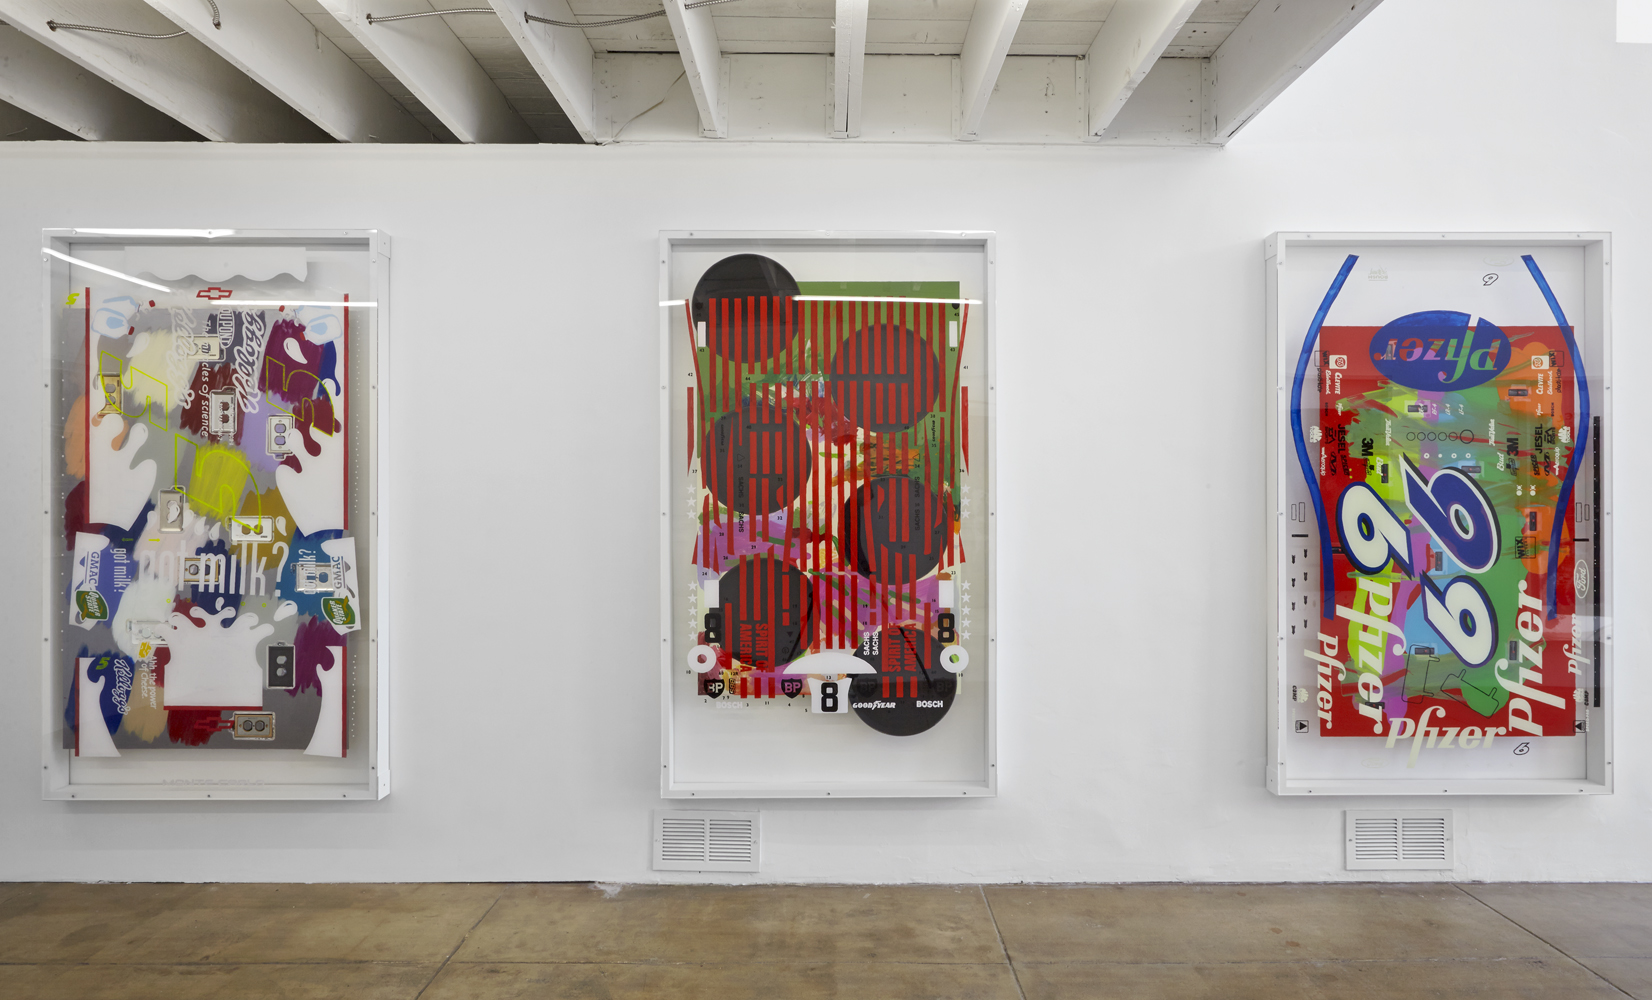 SEAN KENNEDY MIXED MESSAGES THOMAS DUNCAN GALLERY 2013 INSTALLATION VIEW